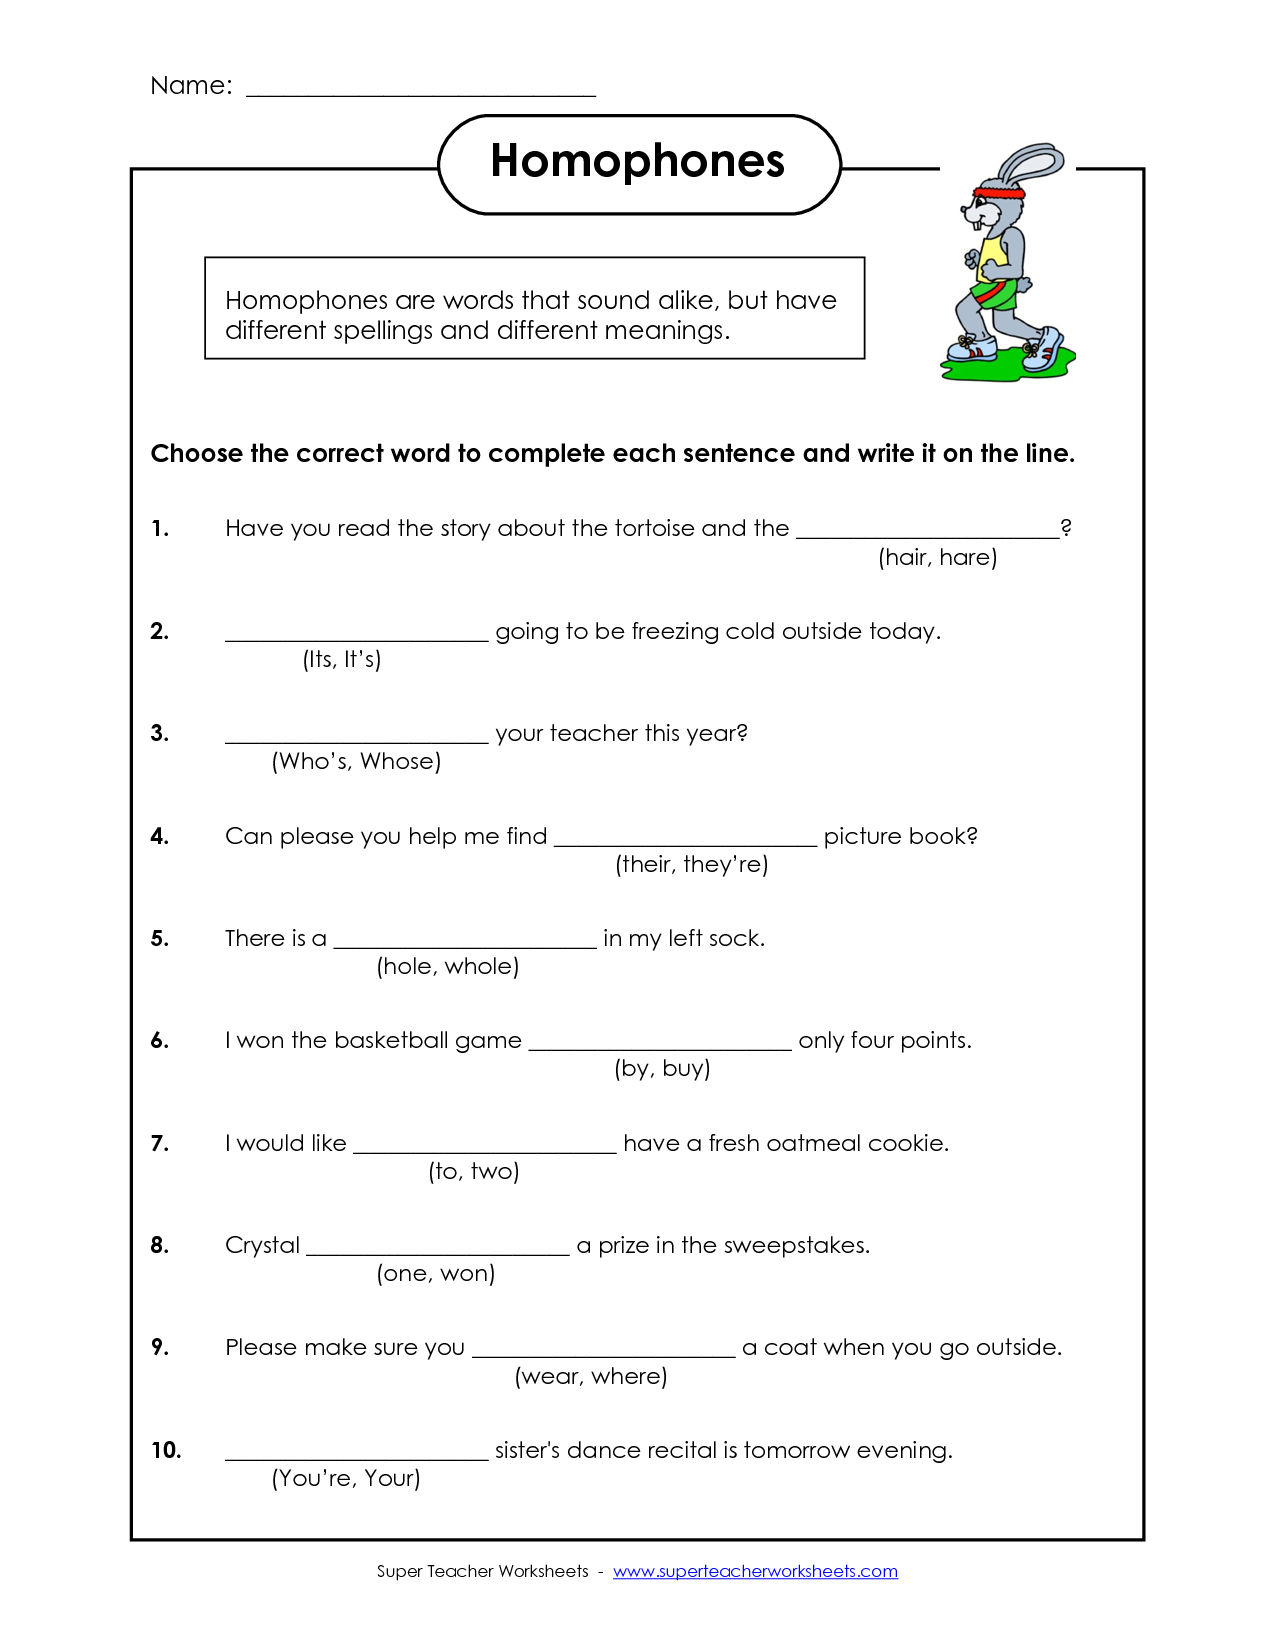 worksheet Homophones Worksheet Pdf homophones worksheet worksheets pdf wallpaper wallpaper